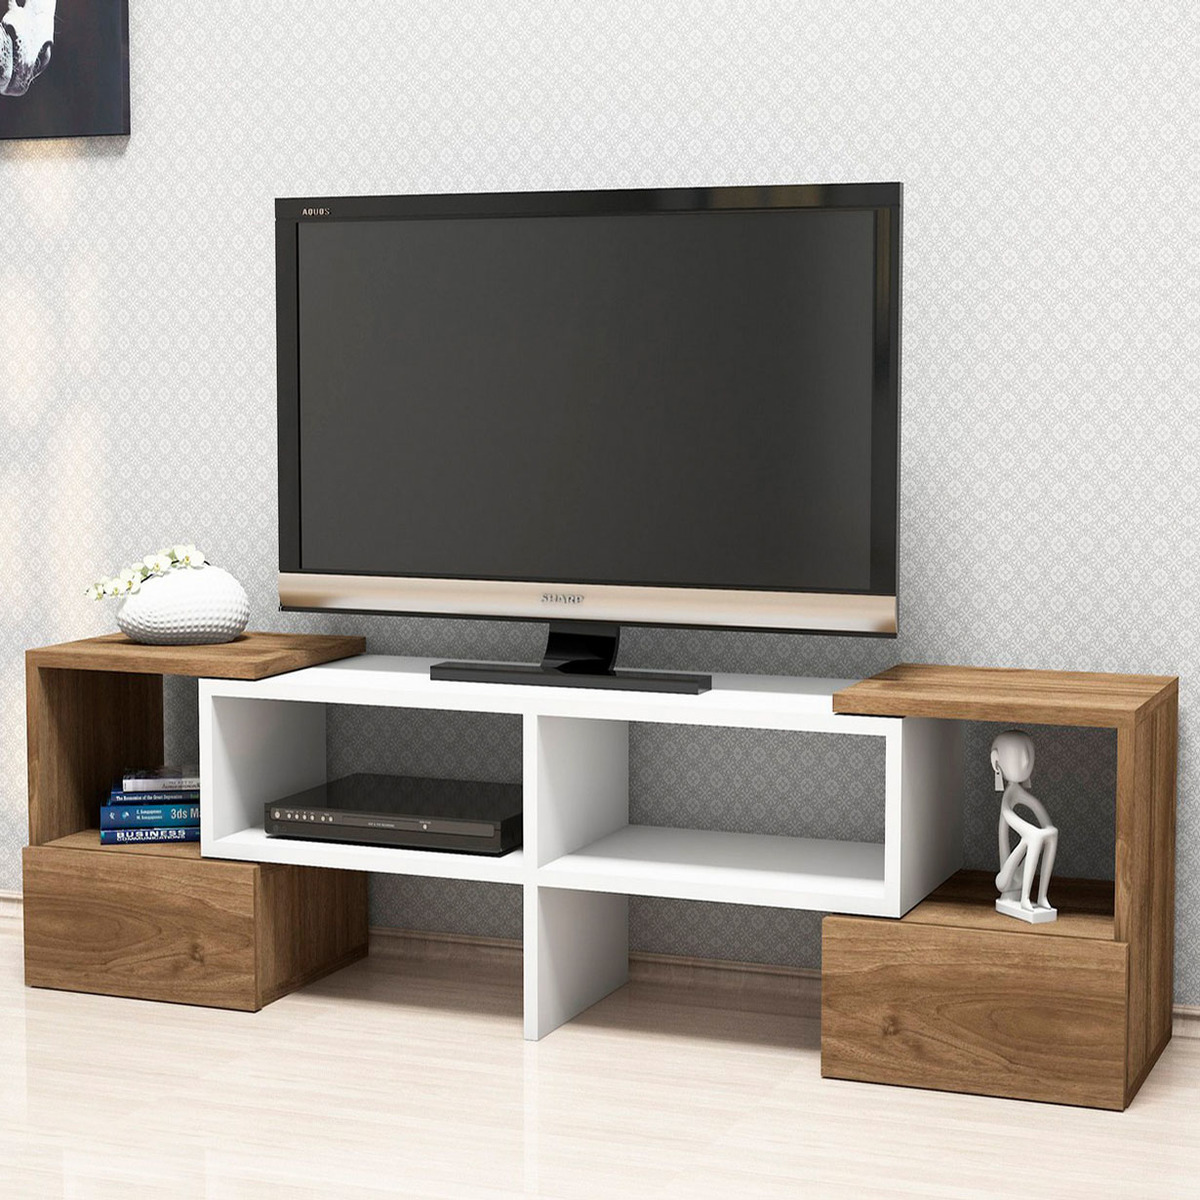 meuble tv 120 cm id es de d coration int rieure french decor. Black Bedroom Furniture Sets. Home Design Ideas